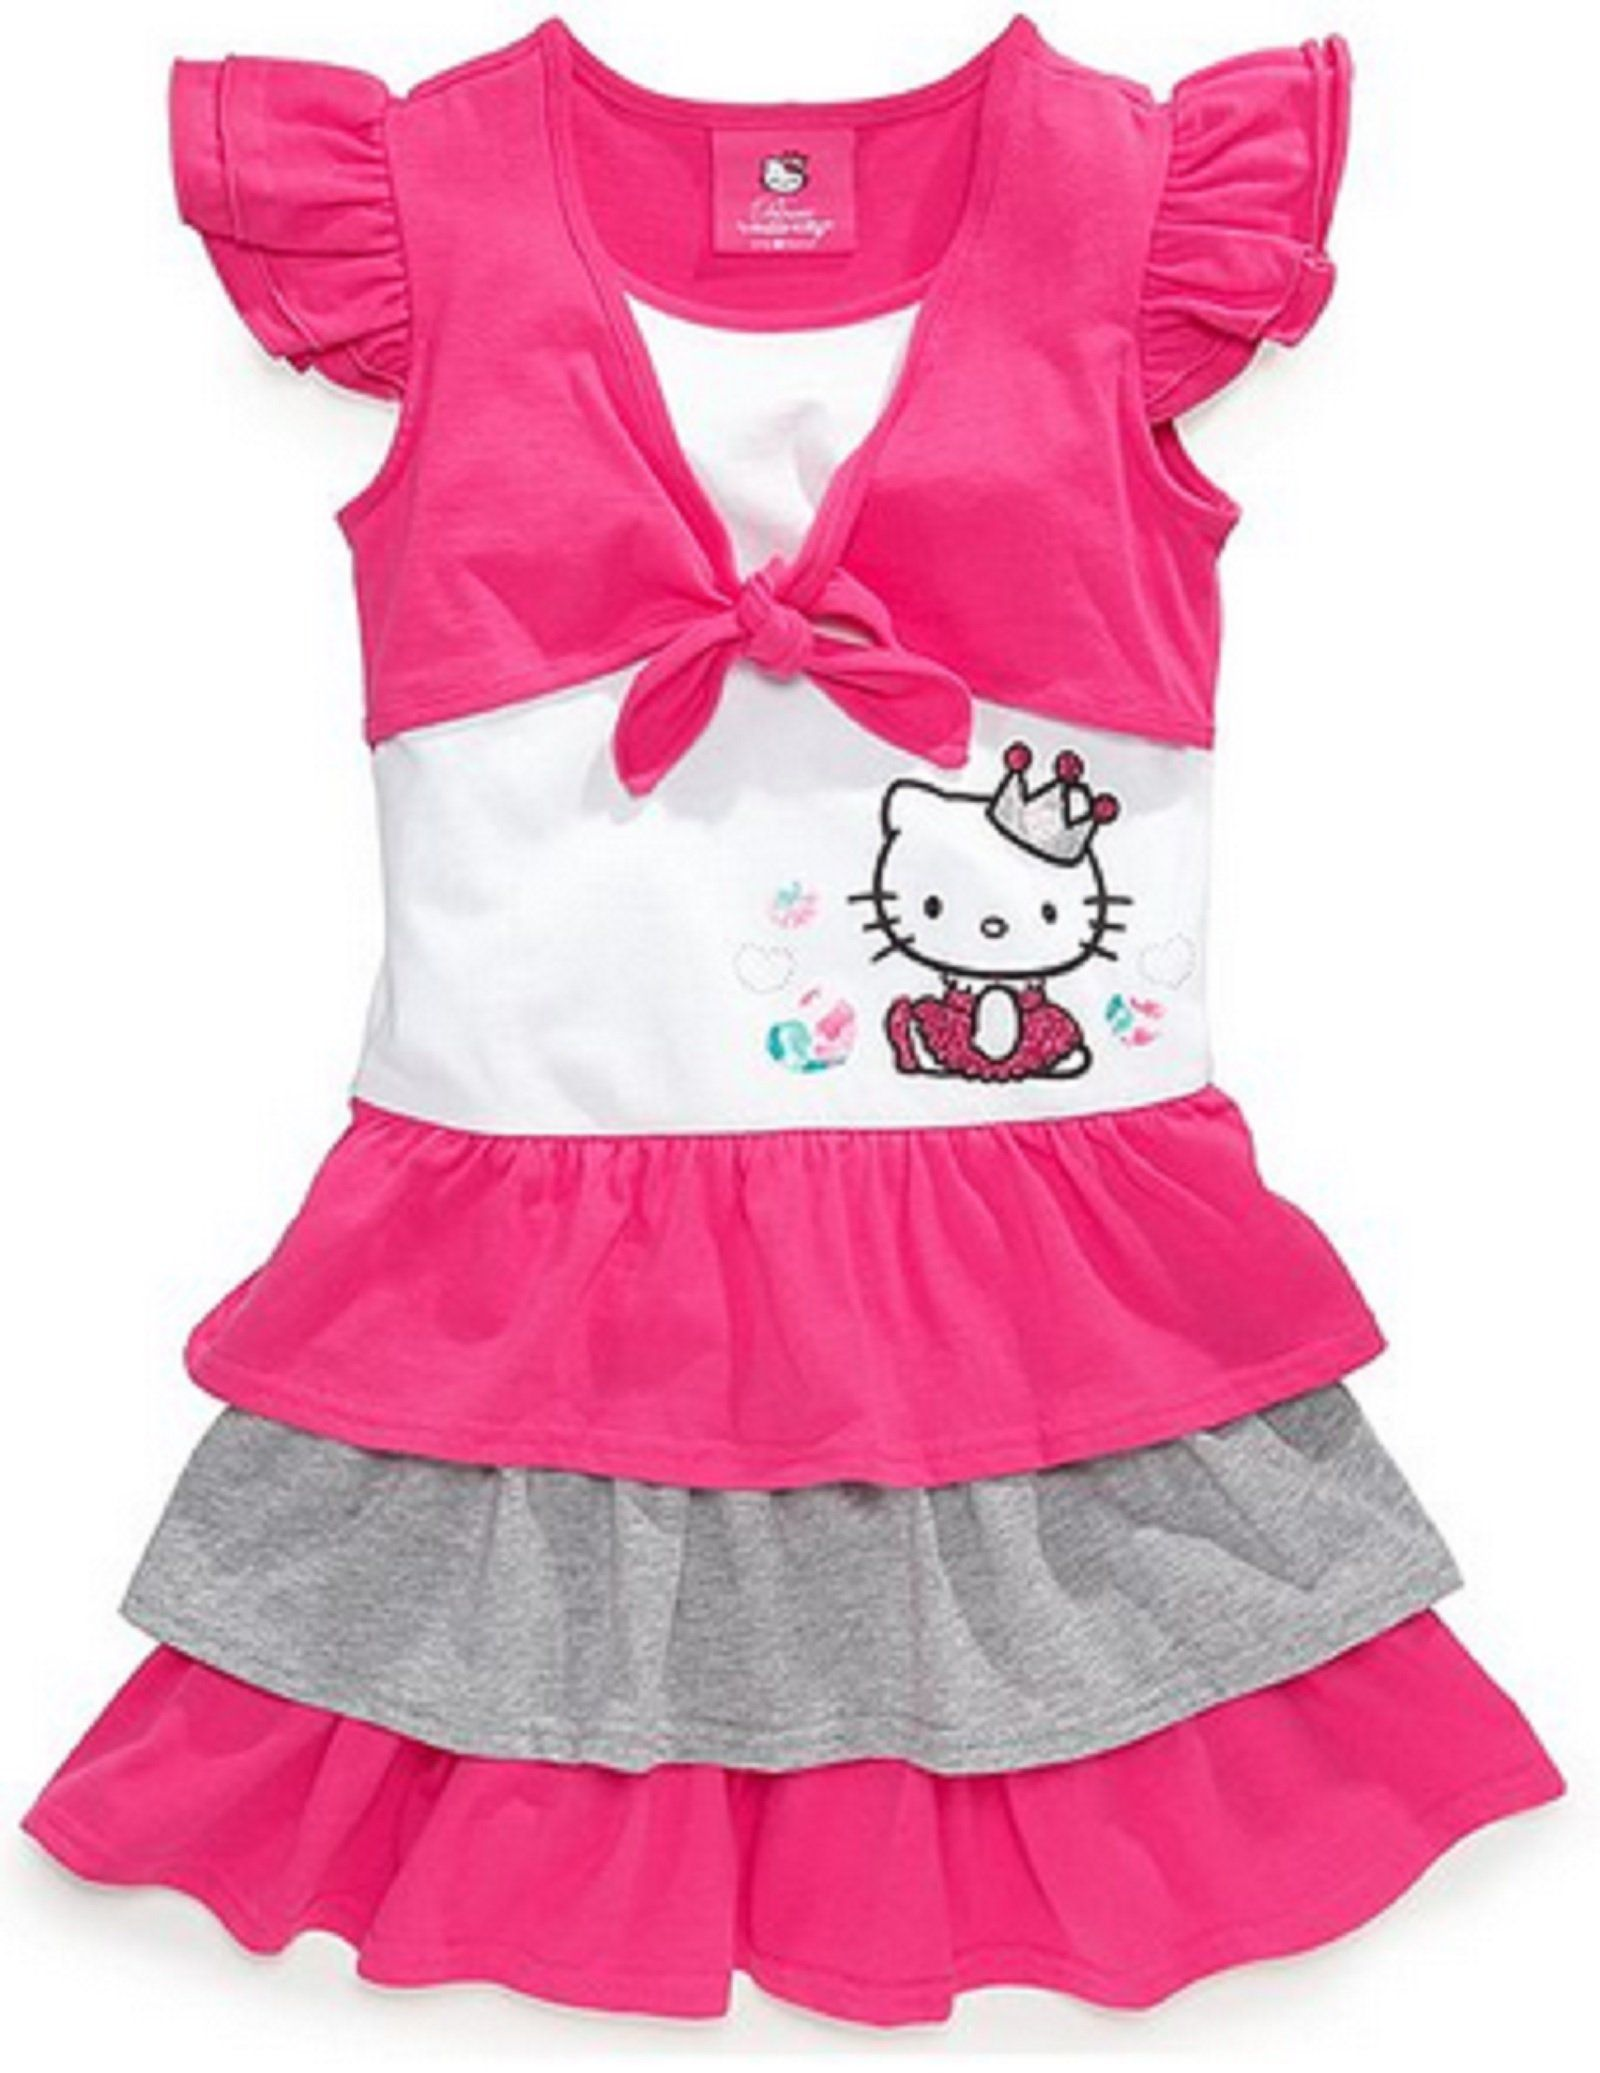 2a0f0494d Hello Kitty Girl's Shrug Color Block Dress Size 6 Pink. Pullover style.  Multicolor tiered